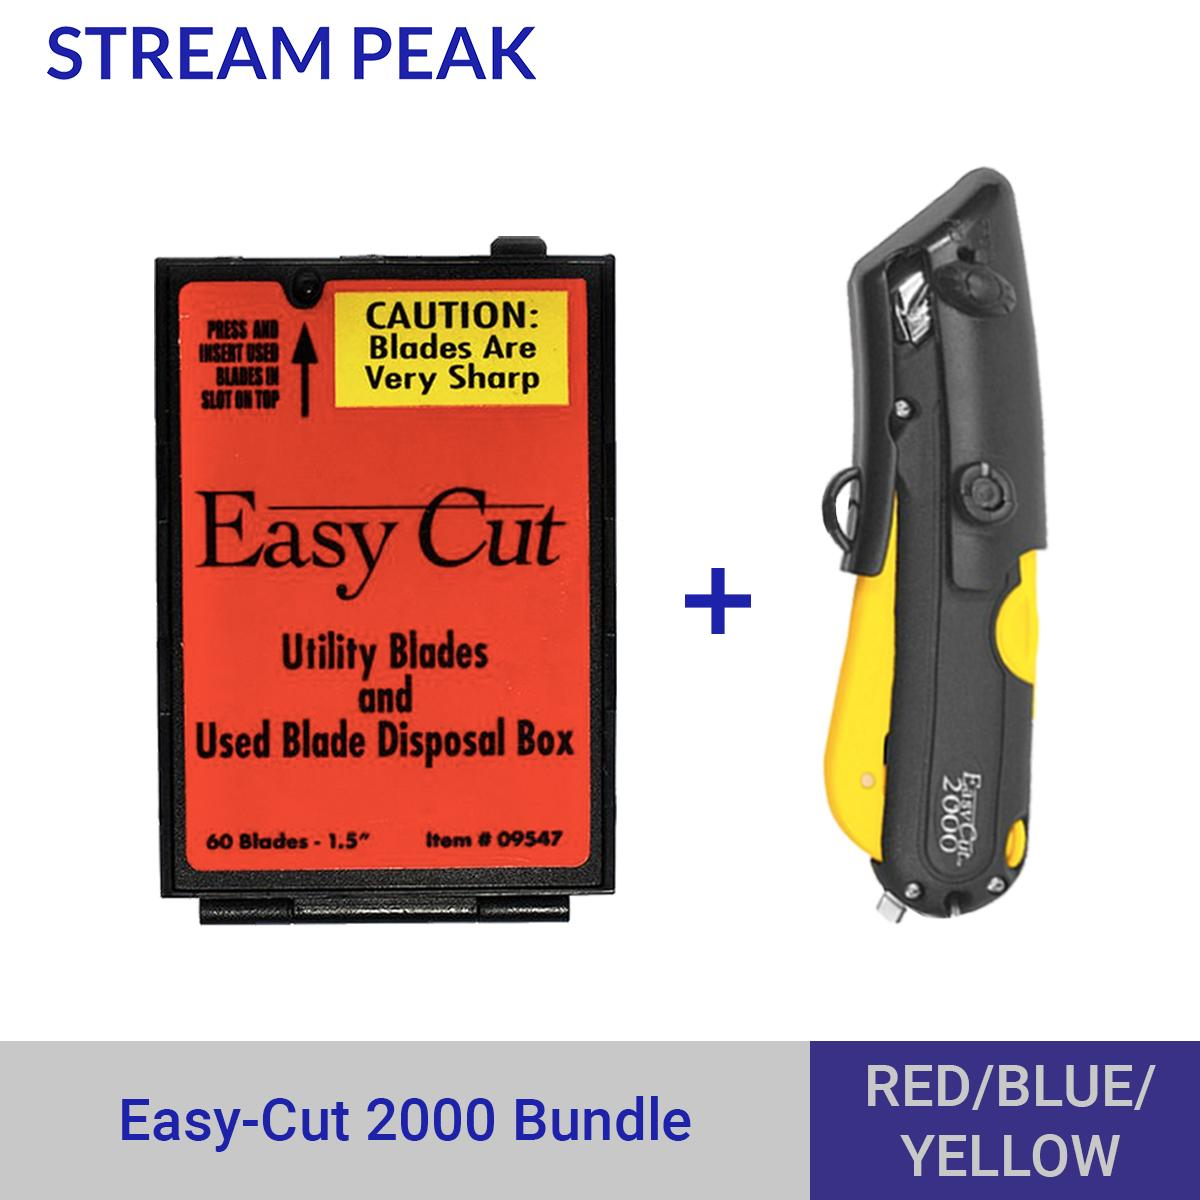 [BETTER ALTERNATIVE TO PENKNIFE] Easycut 2000 Safety Cutter Yellow + 1 Easycut Blade Dispenser Box Bundle [ Prevent Content Damage, Protect Users, Retractable Blade, Replaceable Blade ]